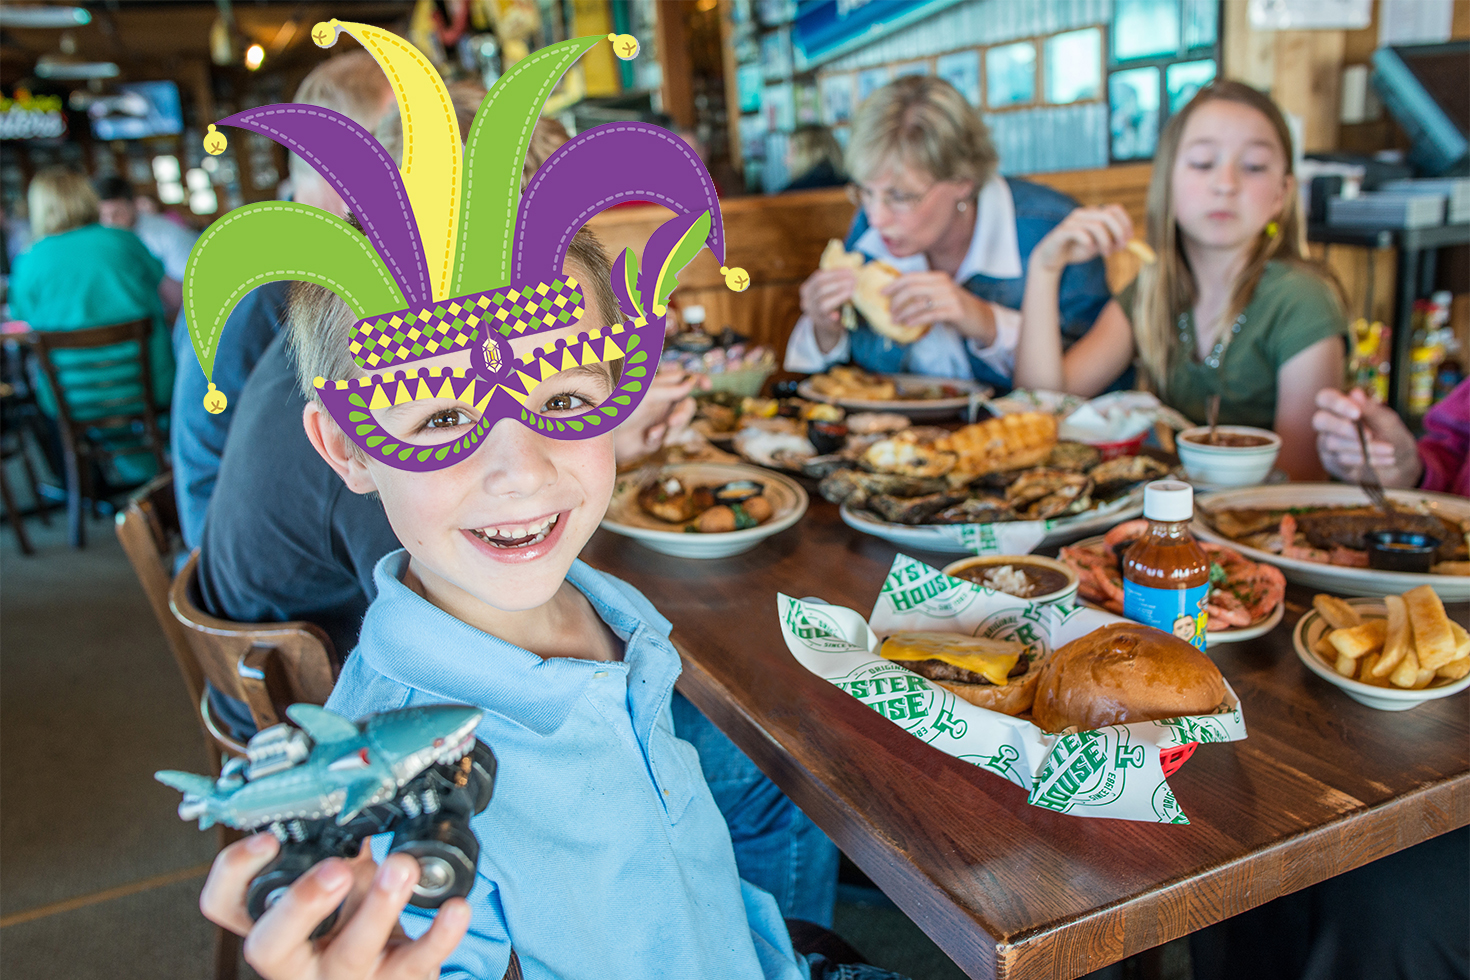 Celebrate Mardi Gras & Lent at the Original Oyster House